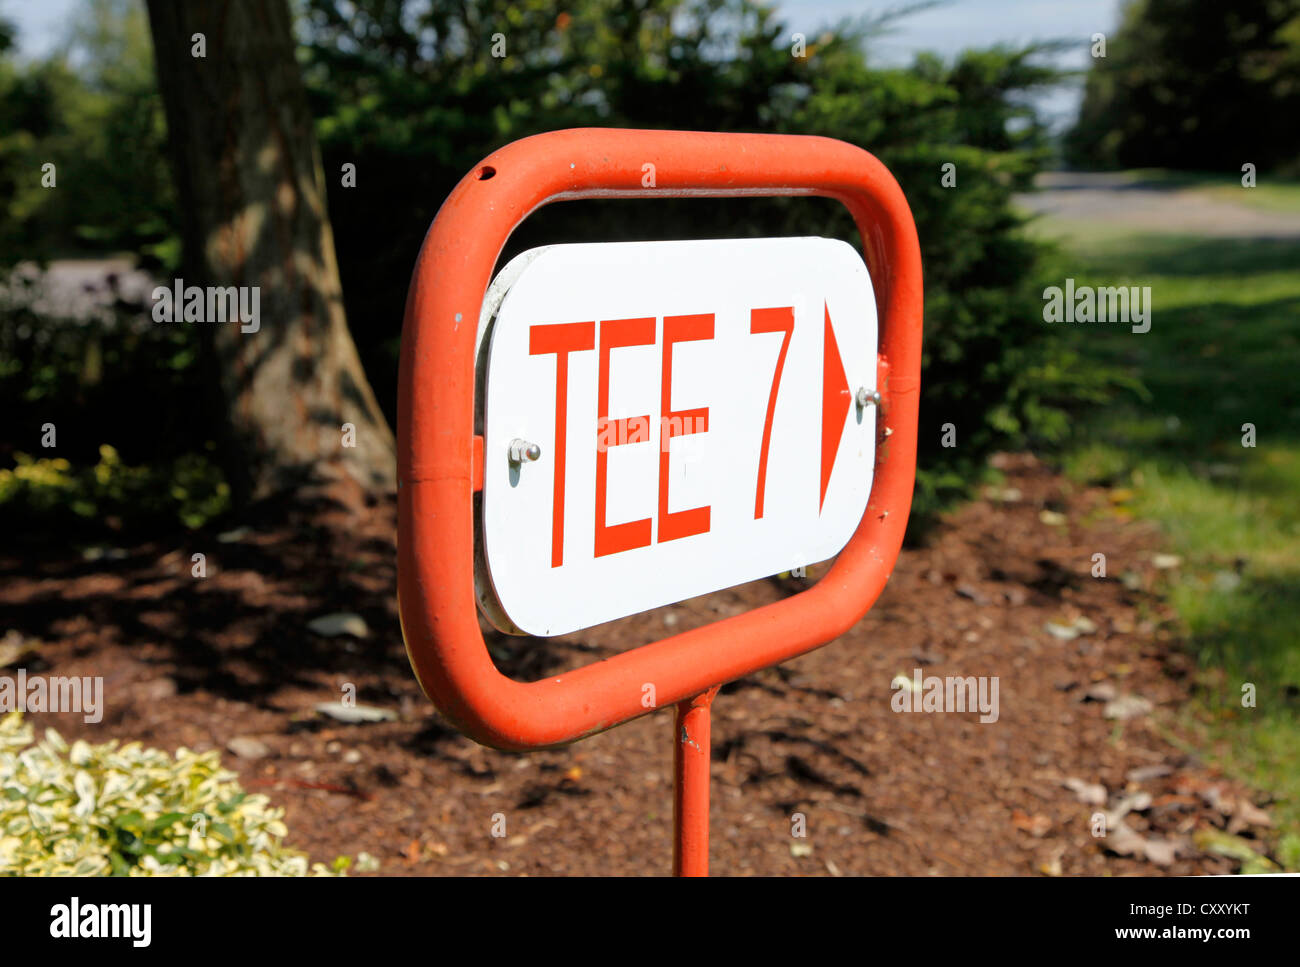 Signpost at a golf course, way to Tee 7. - Stock Image